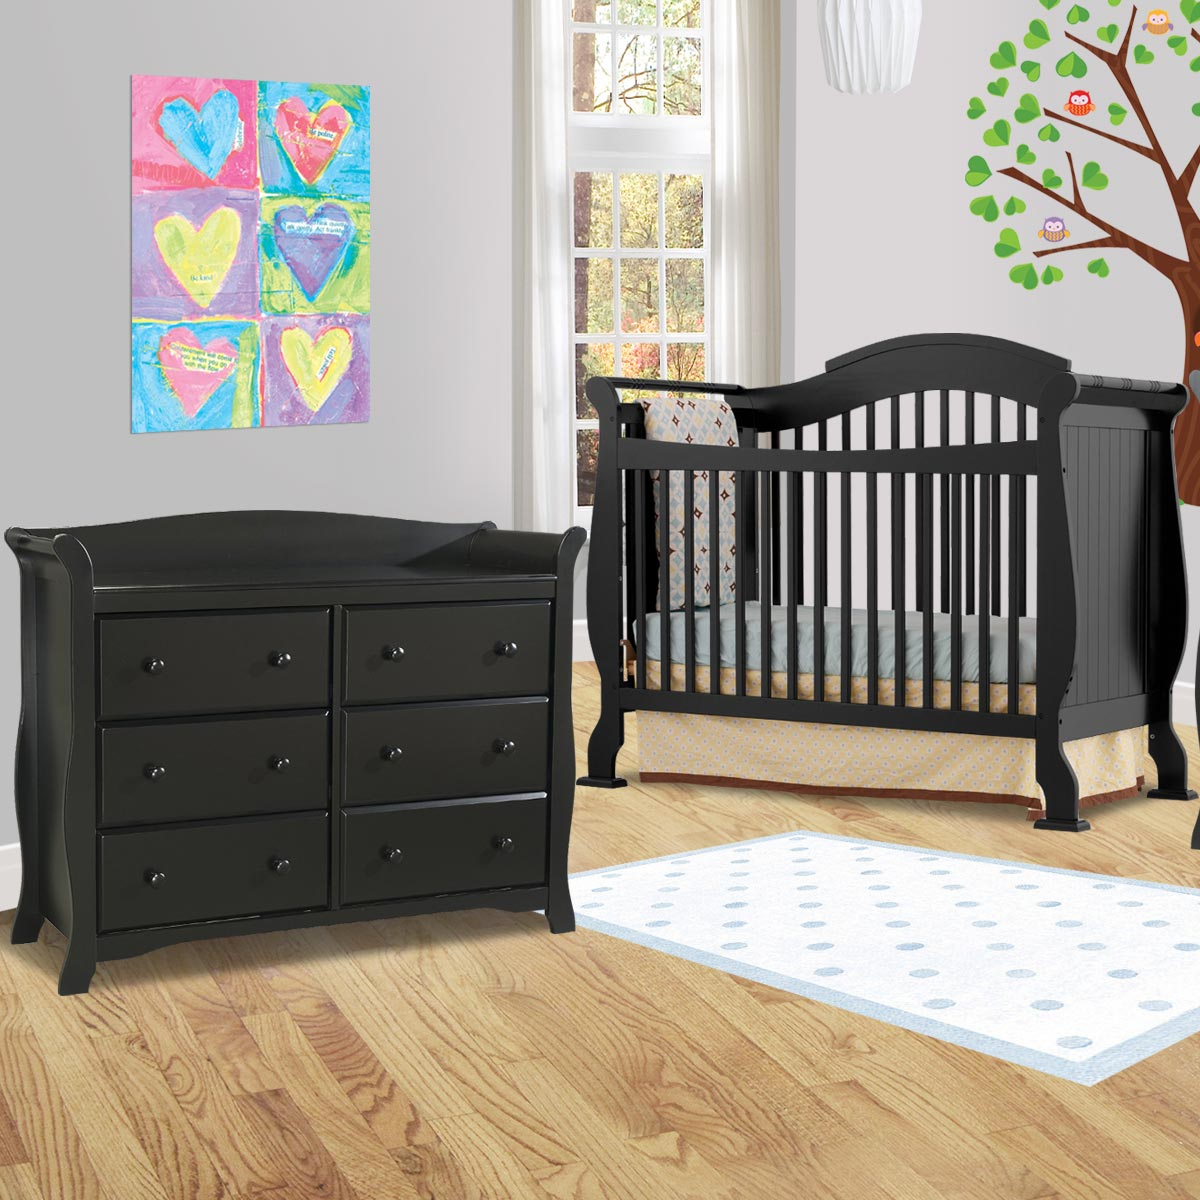 Storkcraft 2 Piece Nursery Set Valentia Convertible Crib And Avalon 6 Drawer Double Dresser In Cherry Free Shipping